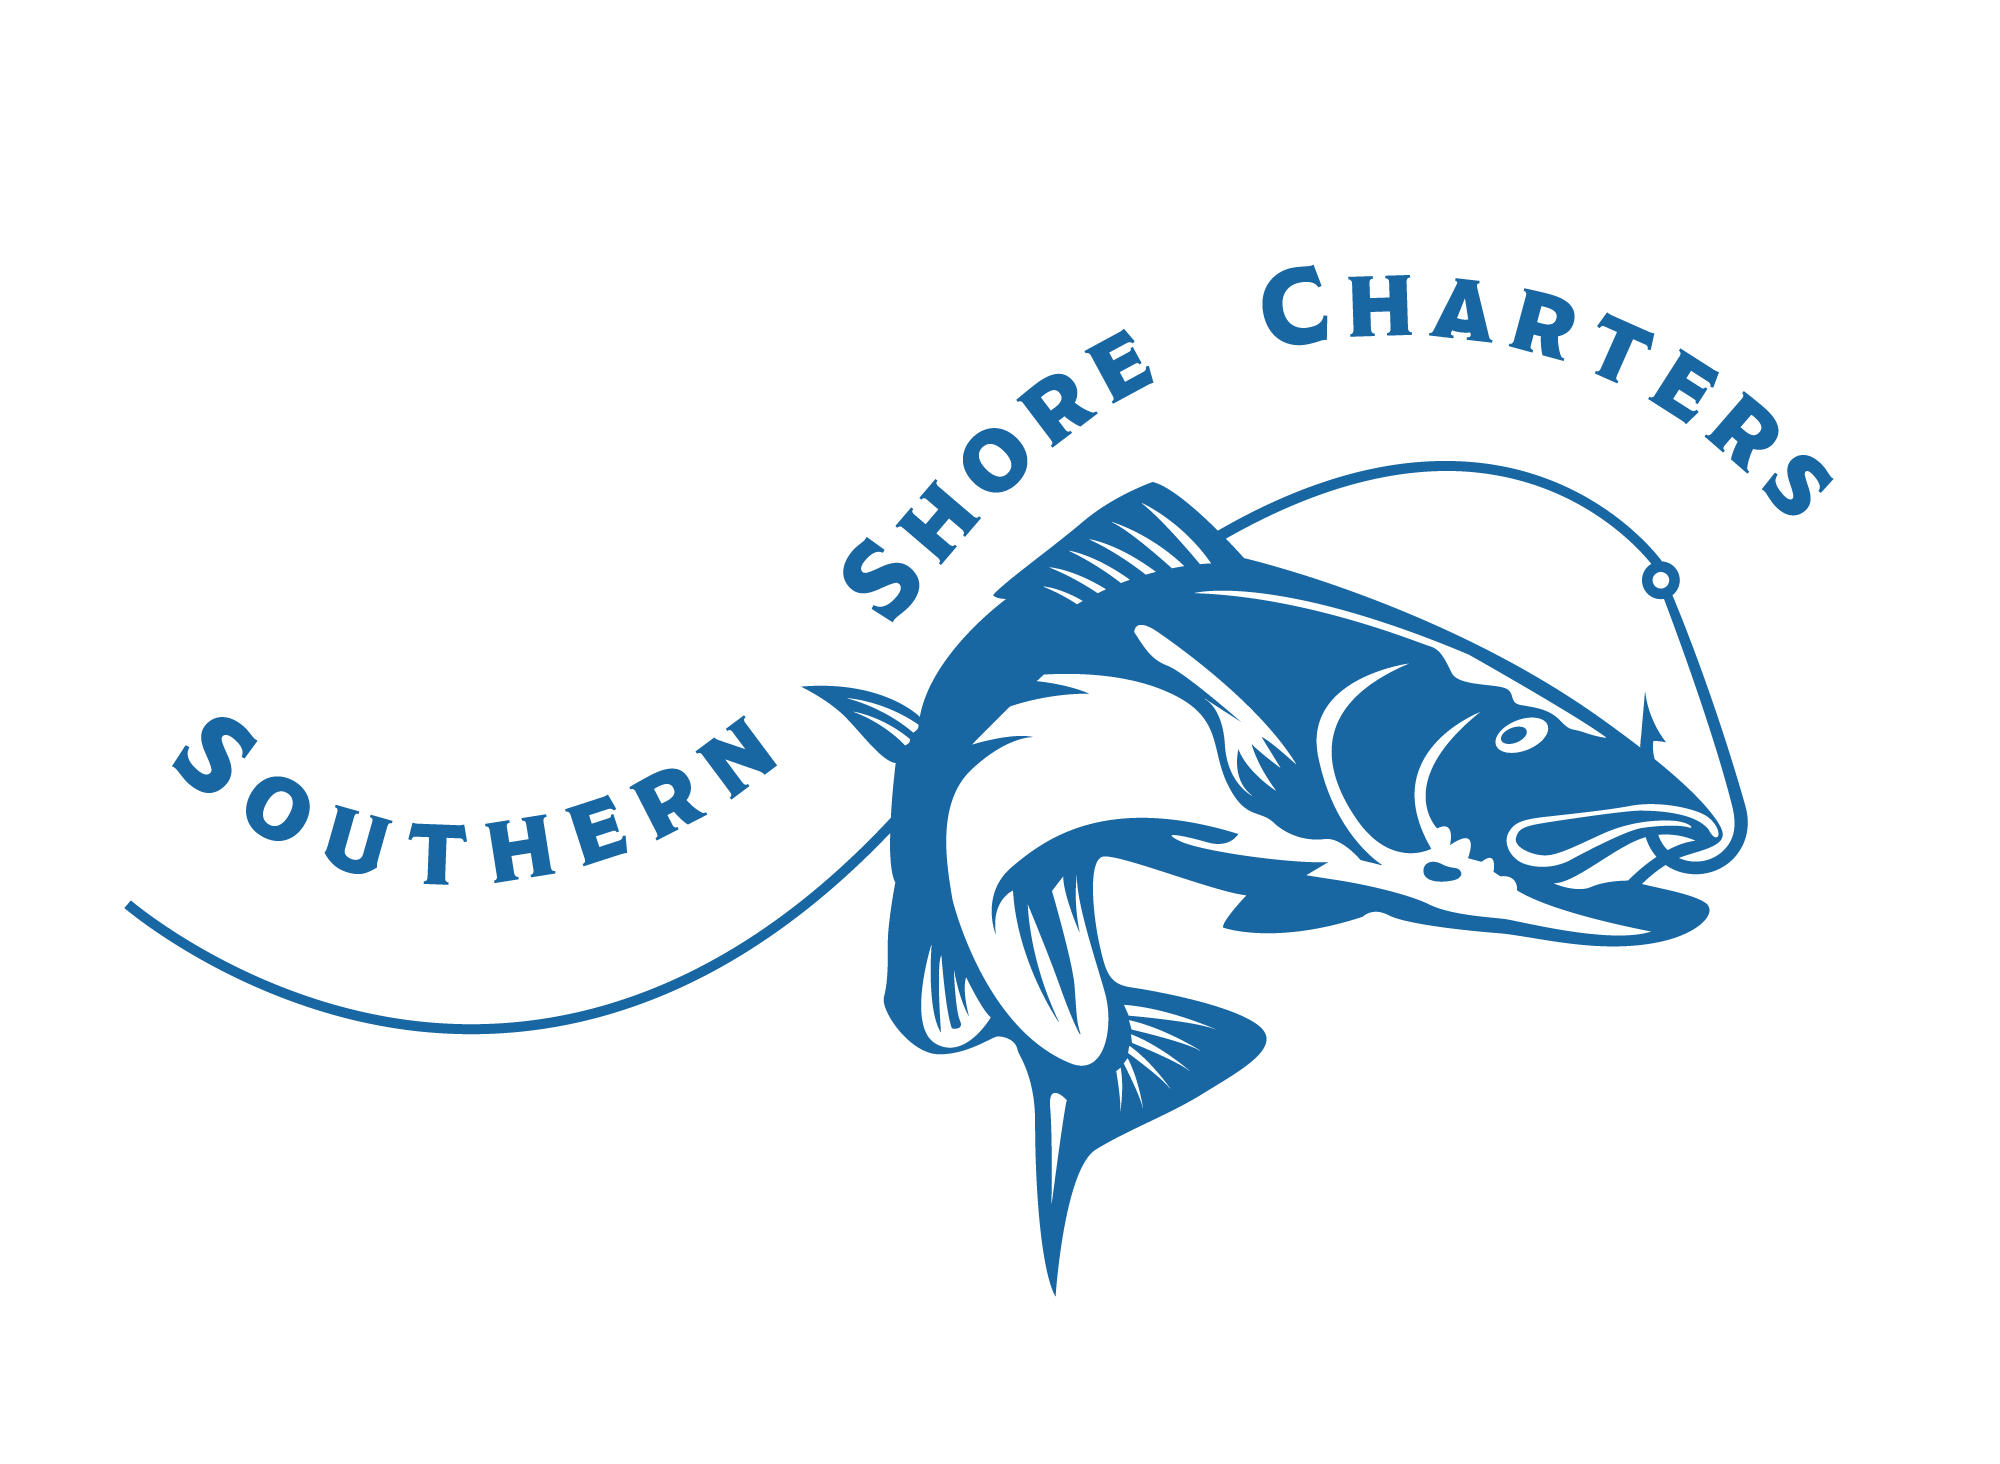 Southern Shore Charters